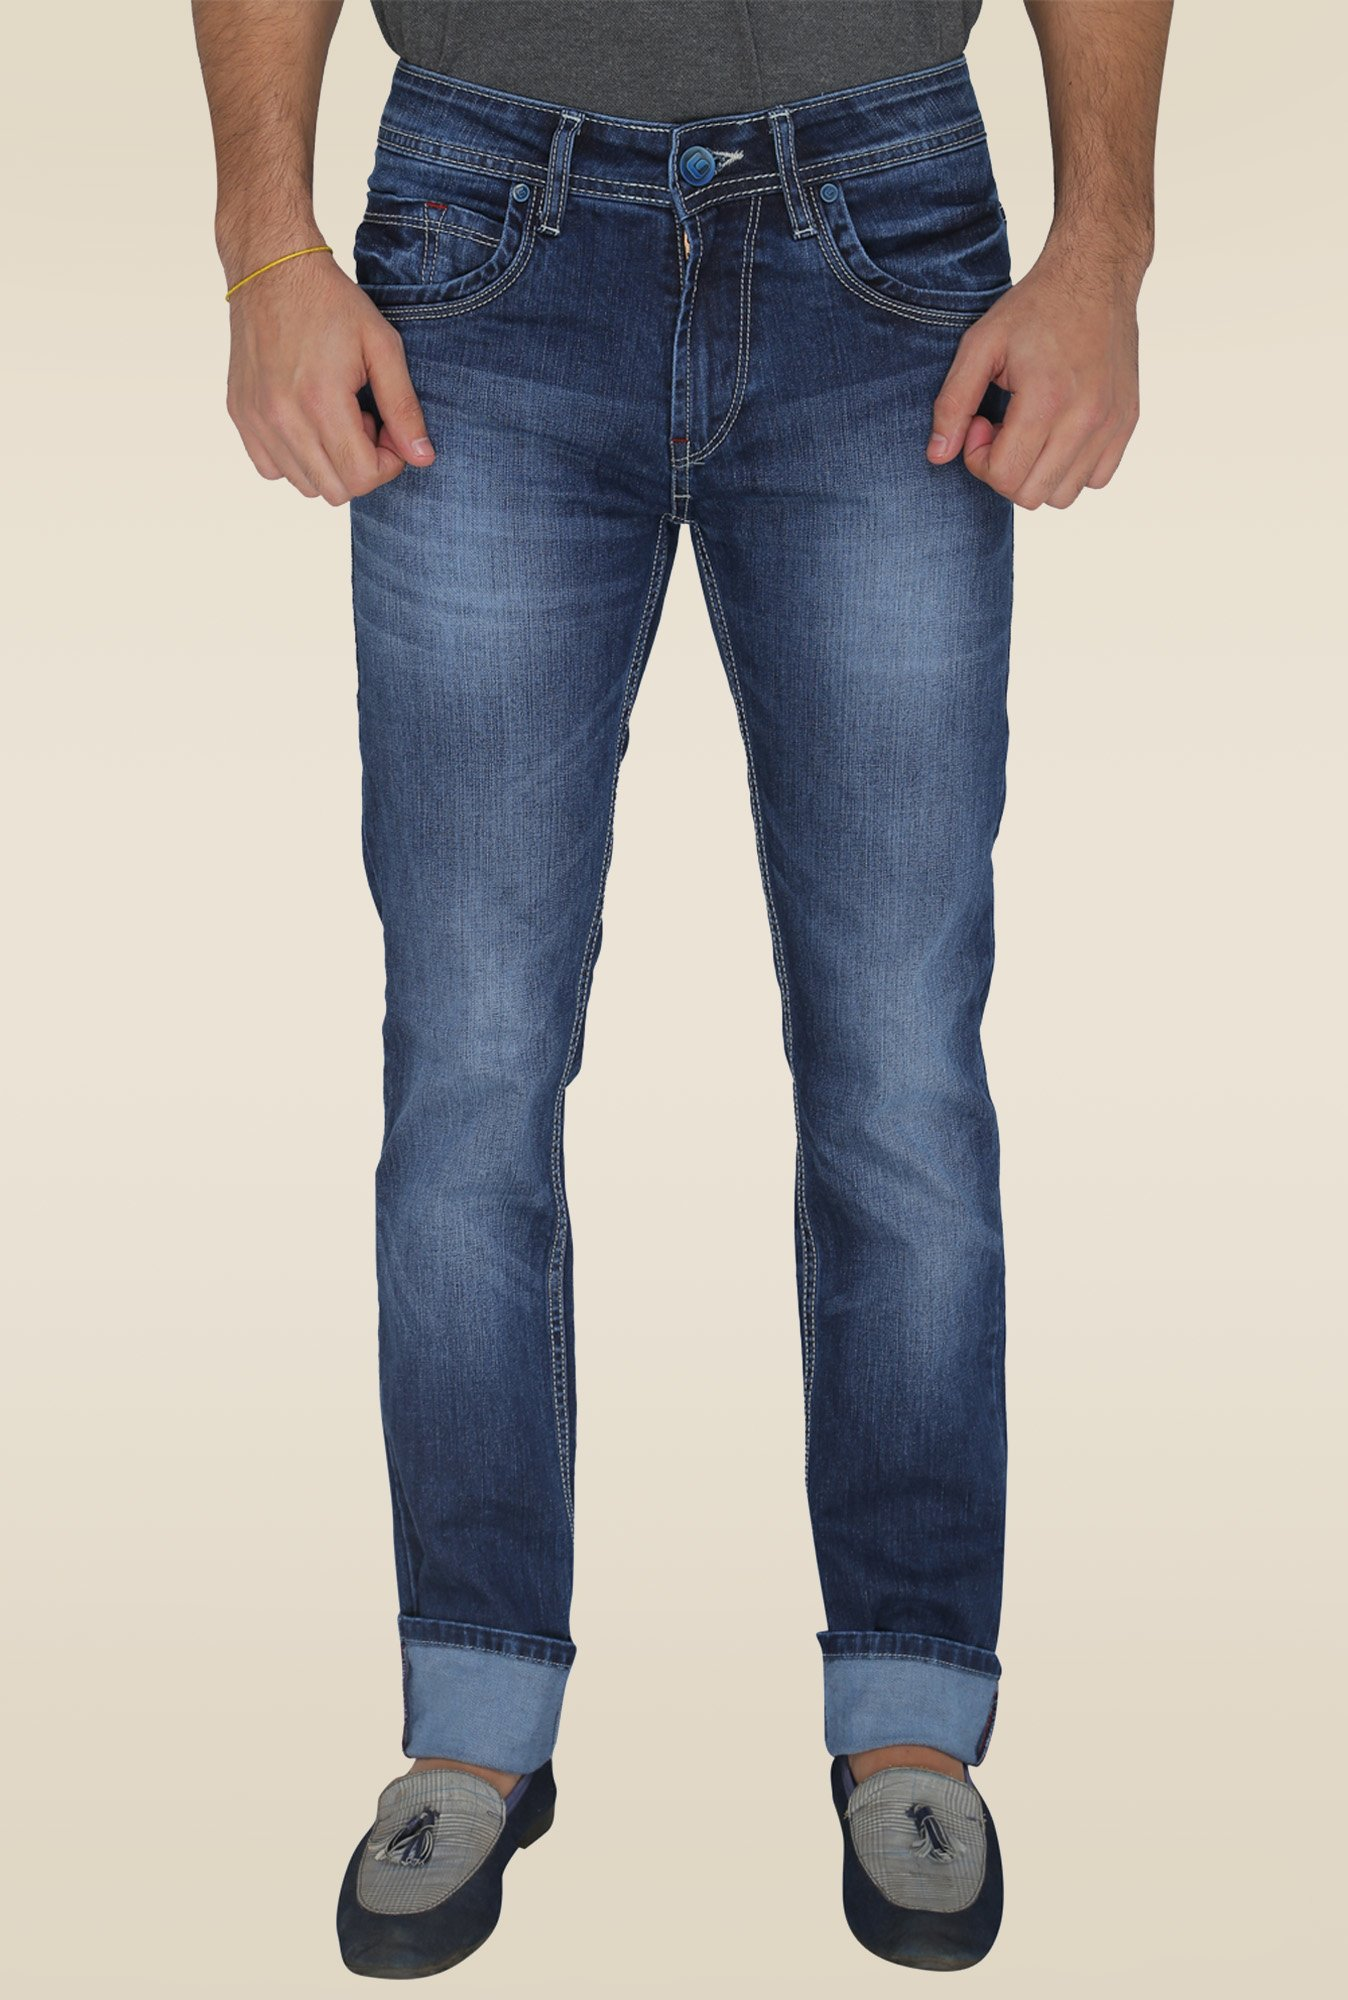 Greenfibre Dark Blue Slim Fit Jeans